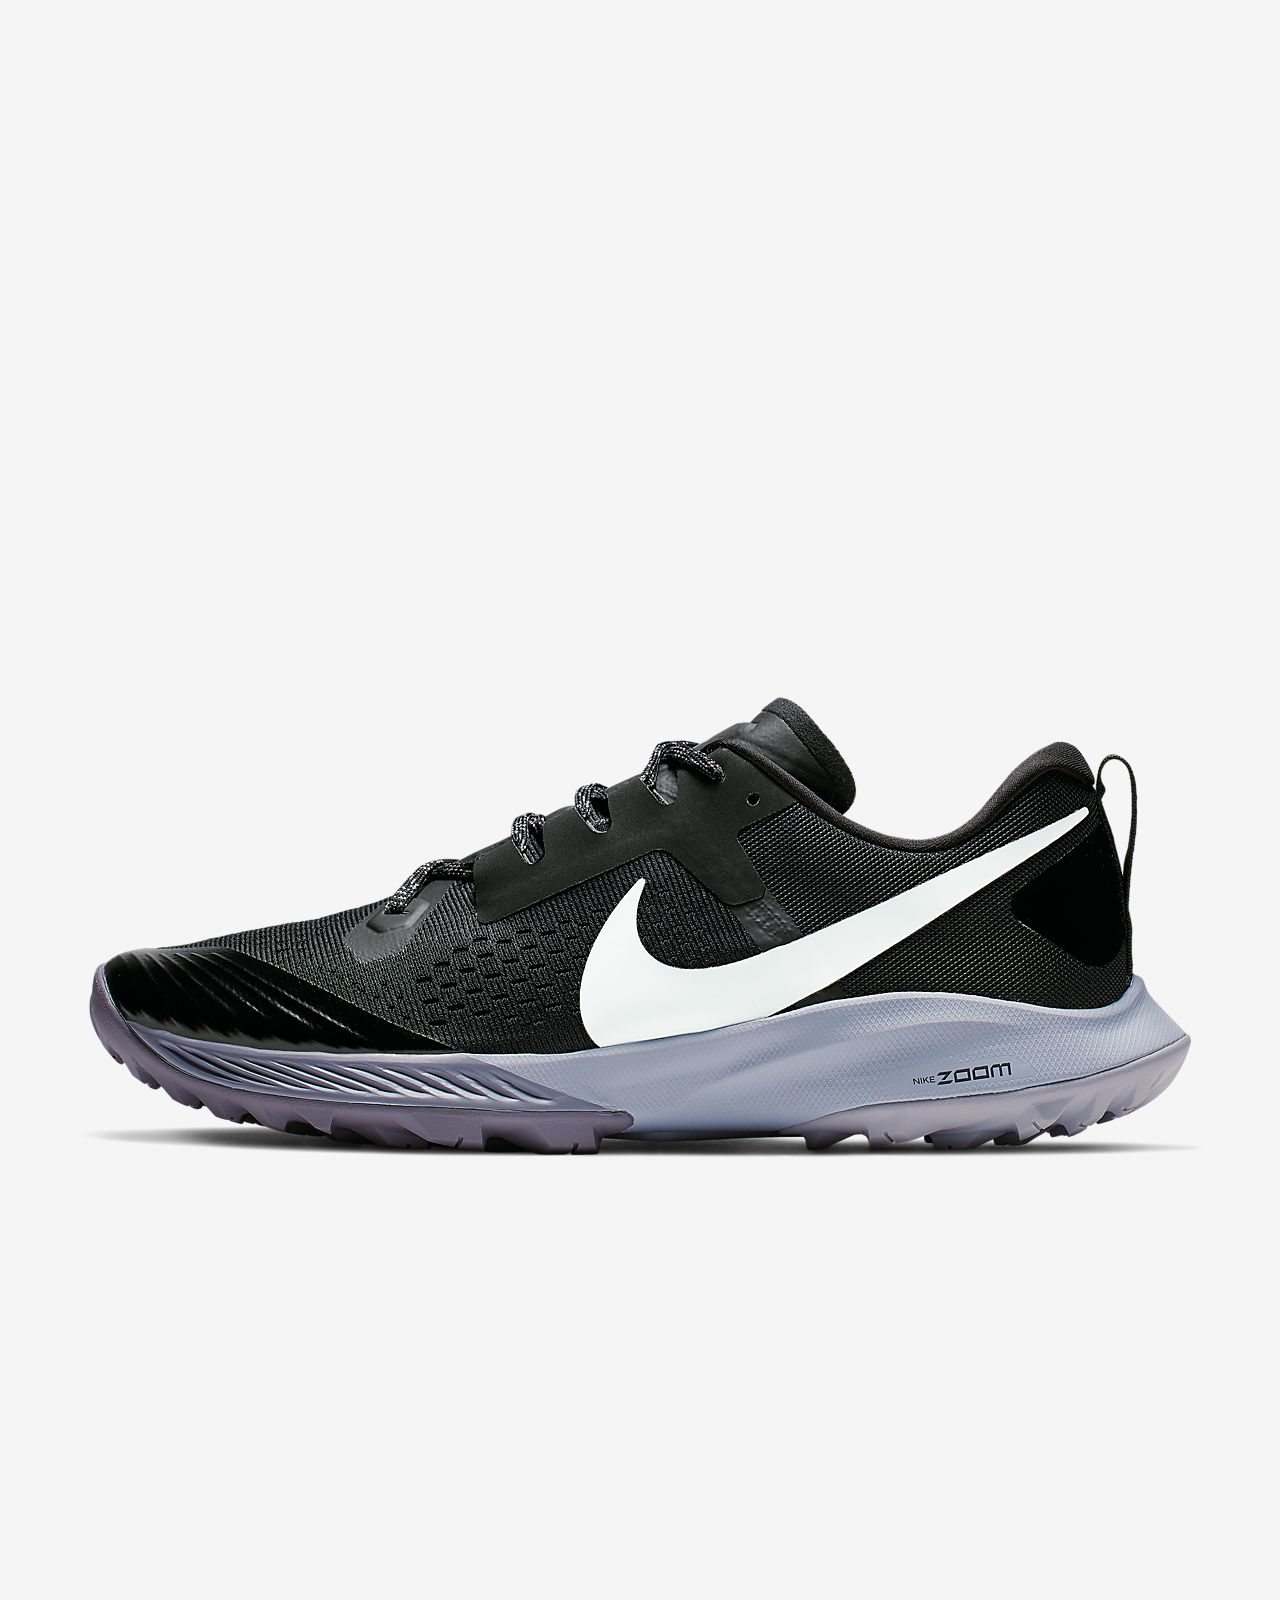 meilleur site web 88e7f c68cb Nike Air Zoom Terra Kiger 5 Men's Running Shoe